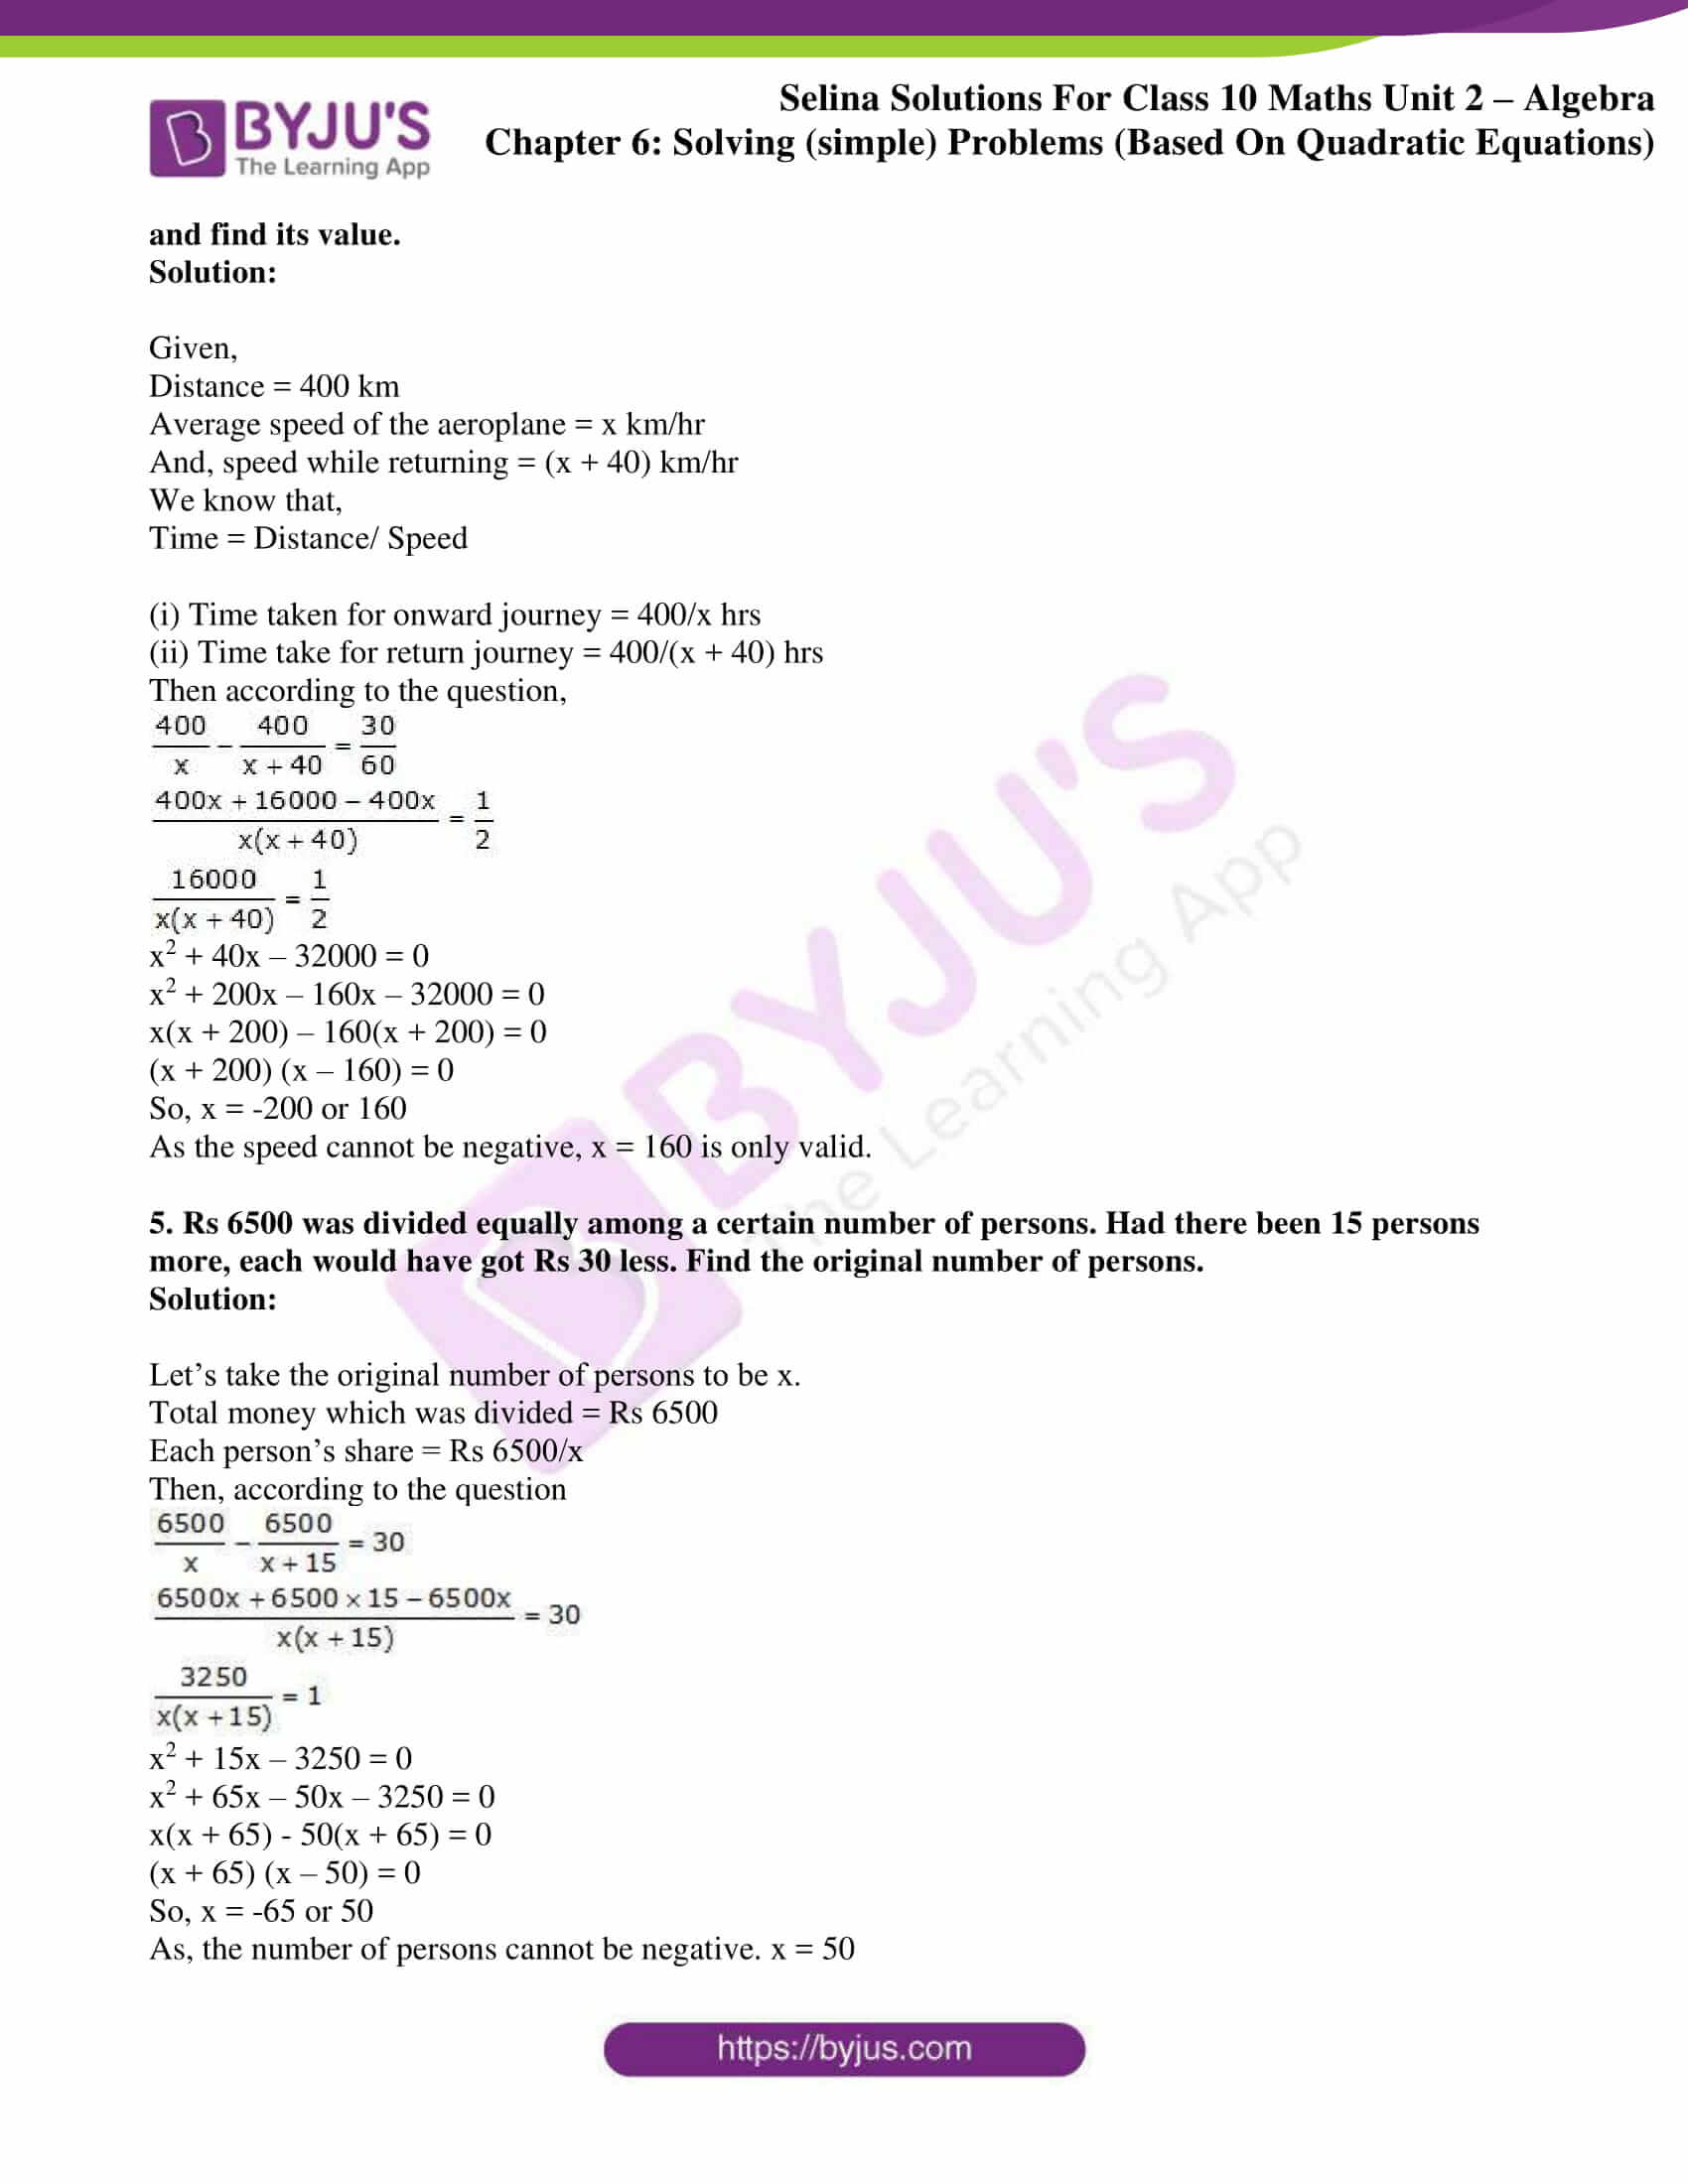 selina solution concise maths class 10 chapter 6e